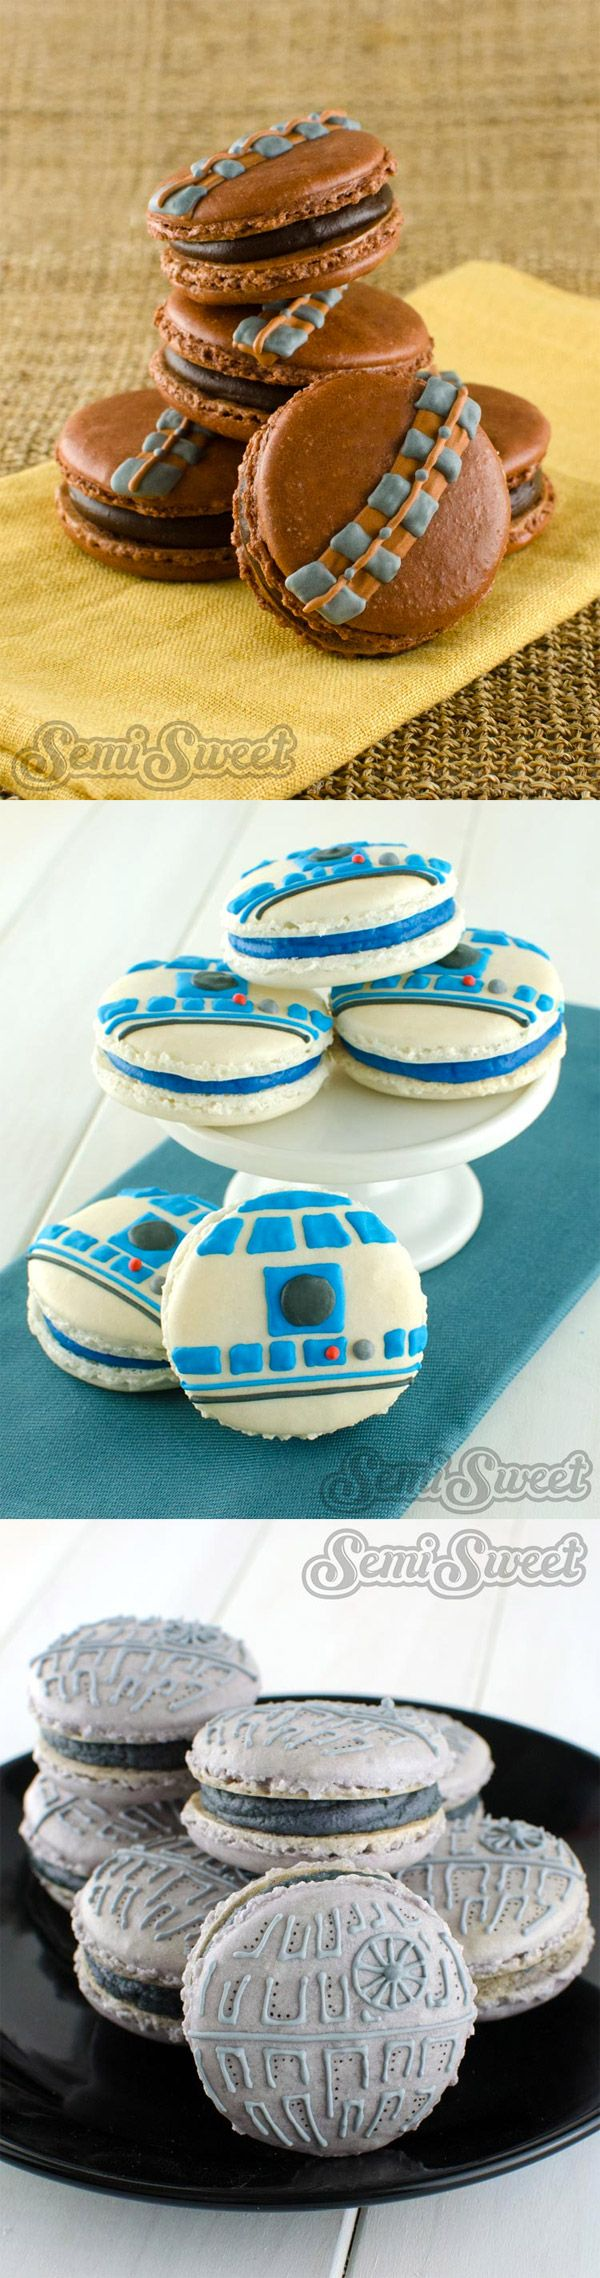 Macarons de Star Wars